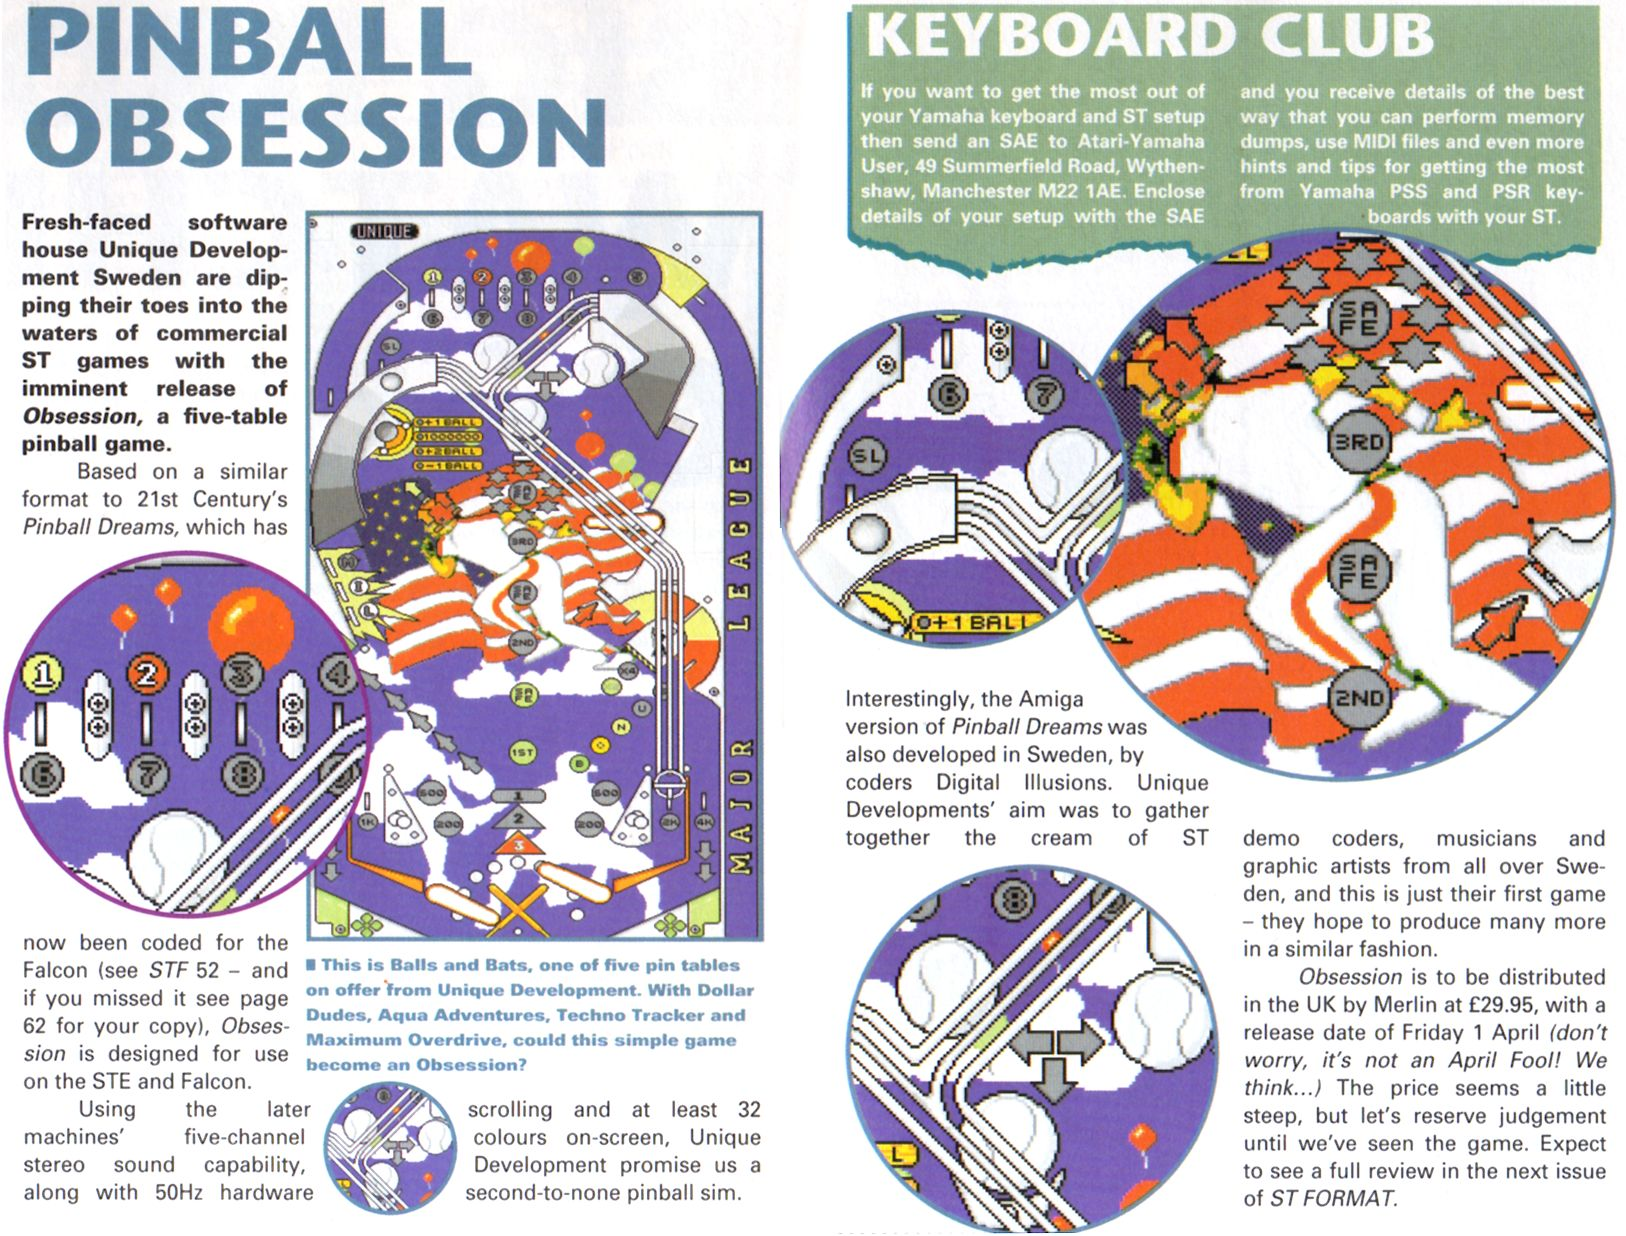 This is an early version of Obsession. The original idea was to make a simple shareware pinball game for the STE, on the level of 'Smash Hit Tennis'